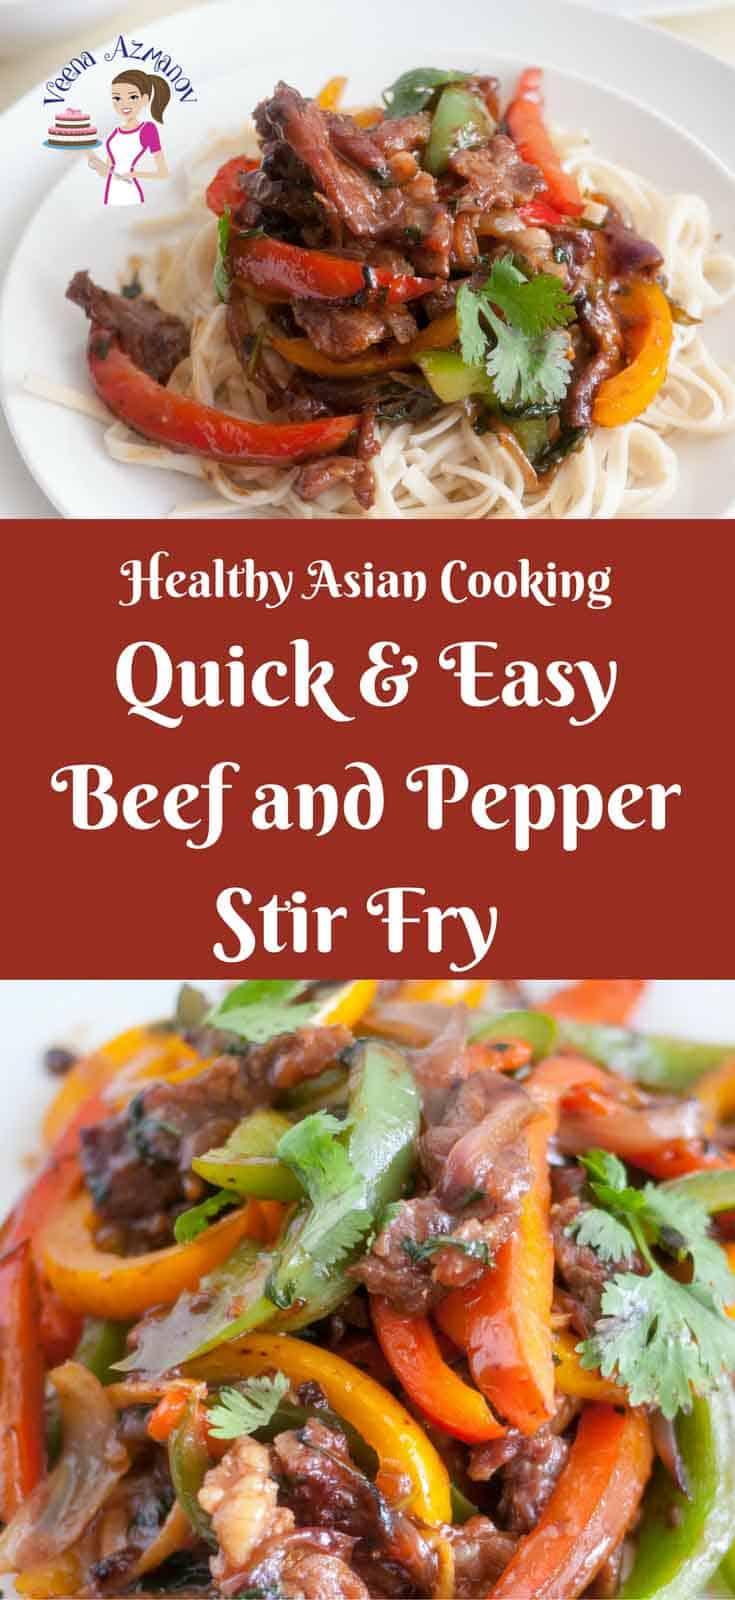 This Quick and Easy Beef and Pepper Stir Fry is a perfect weekday lunch or dinner. Use frozen veggies and your prep time is down to nothing. I love stir fry dishes as it gives more flavor in less time and effort and often more healthy too